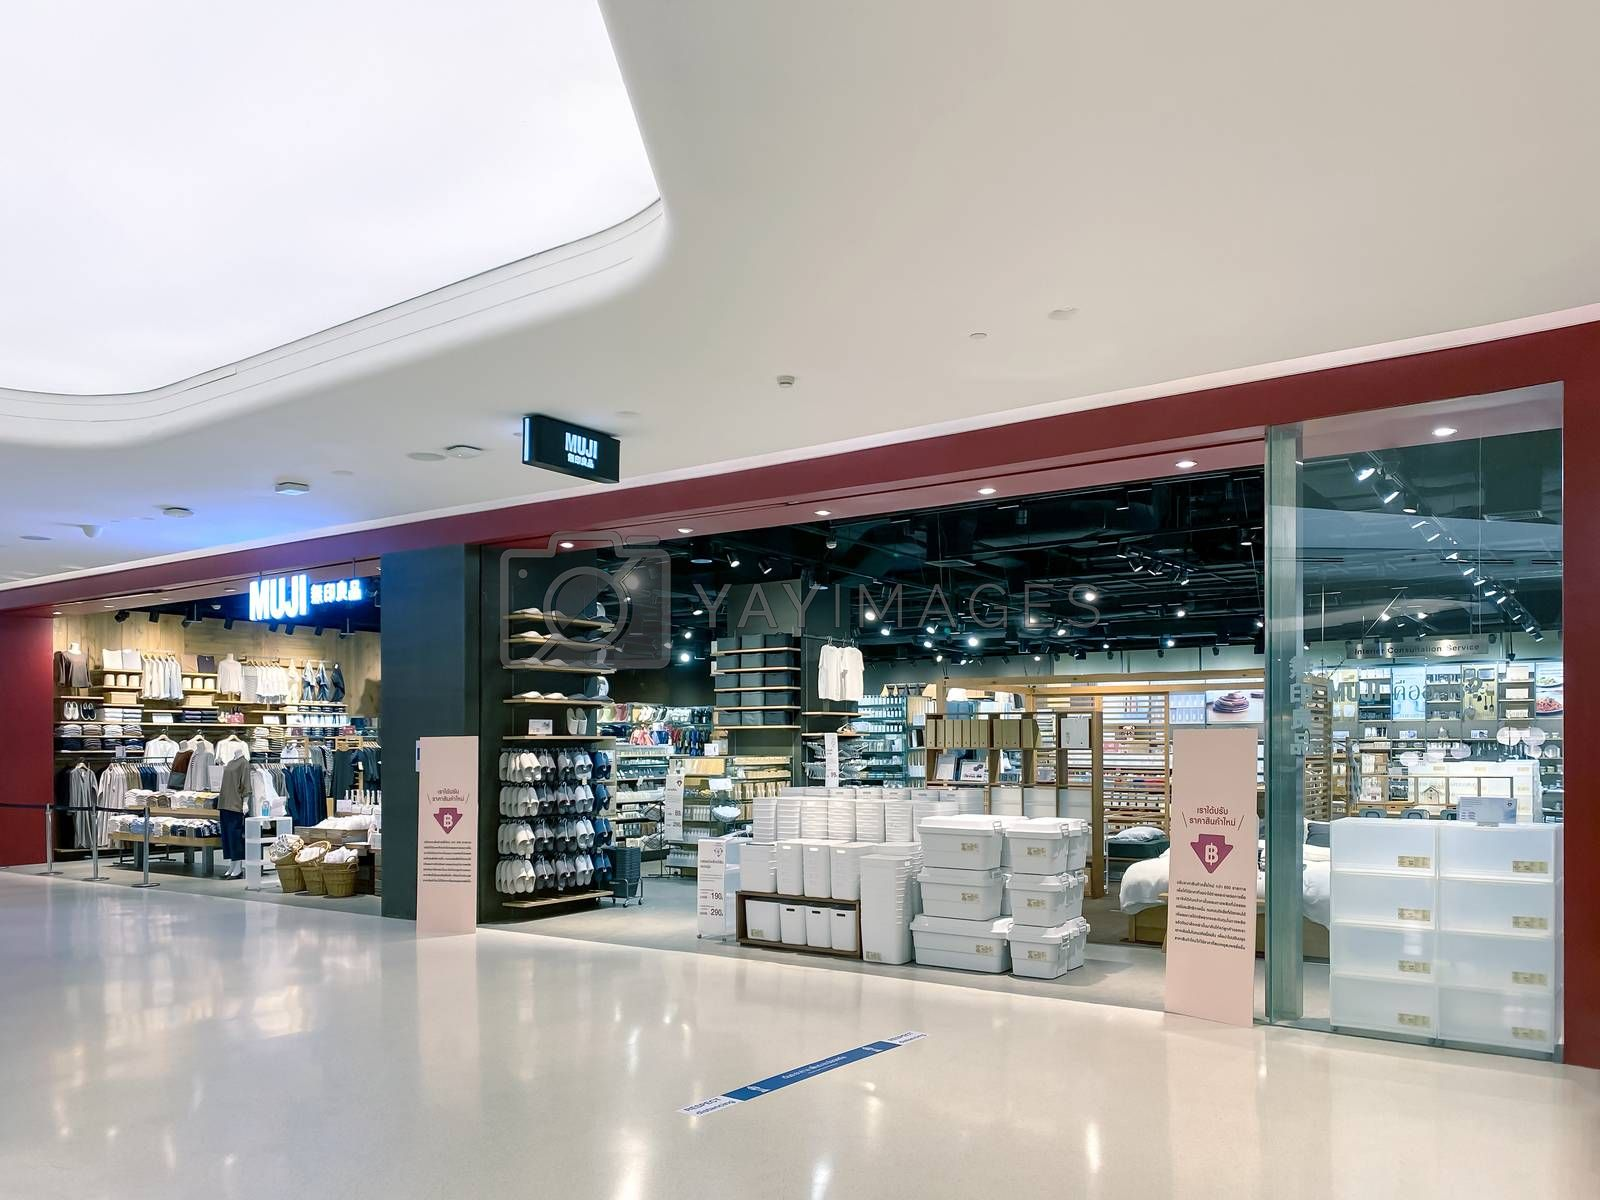 Muji store at Central Embassy, Bangkok, Japanese retail company sells household and consumer goods with pandemic influenza precautions procedure during Covid-19